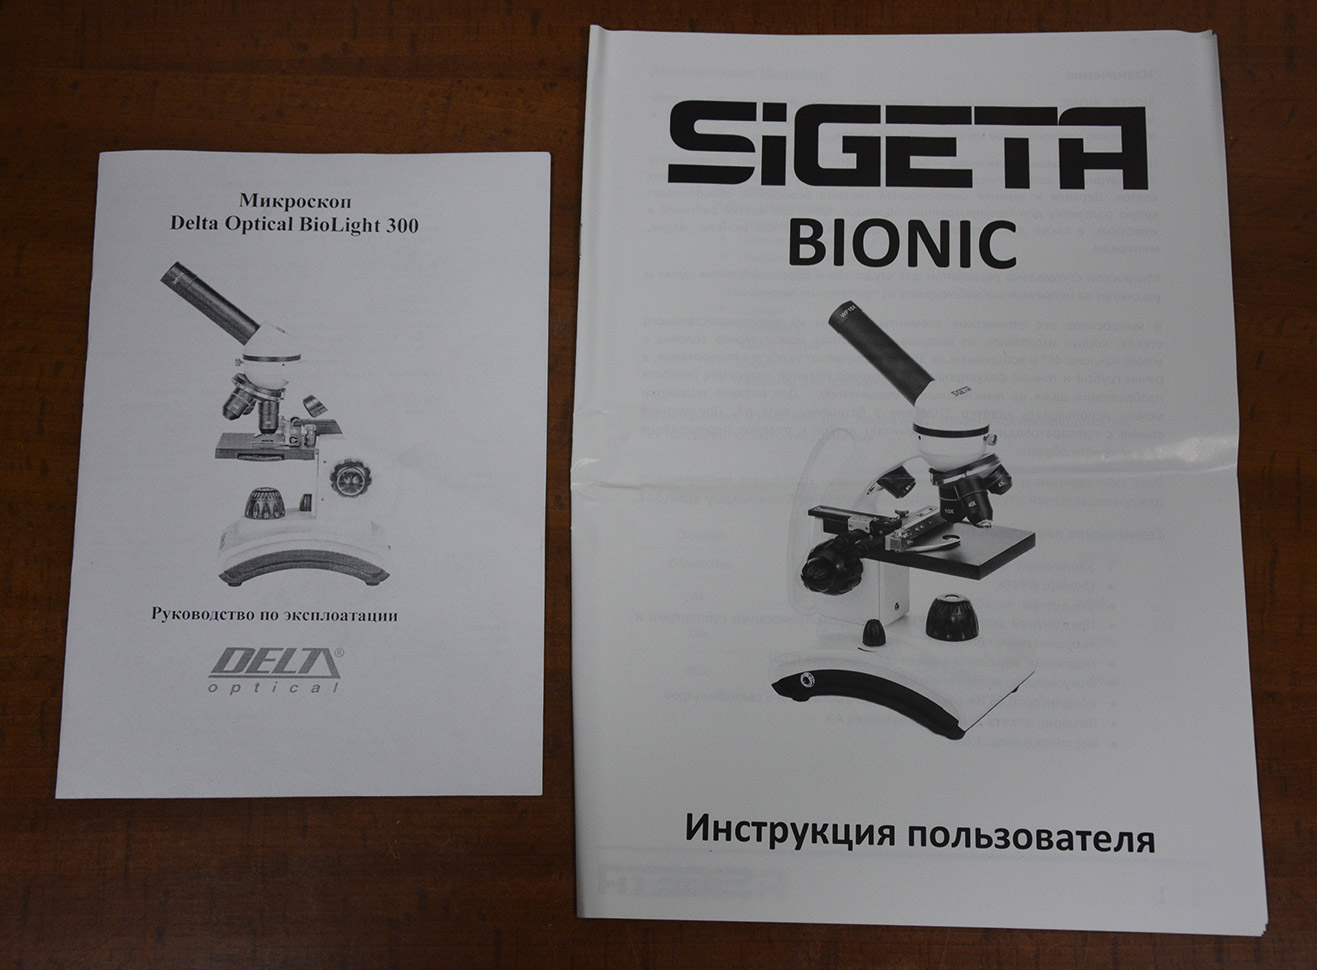 Инструкции к микроскопам Delta Optical Biolight 300 и SIGETA Bionic 64x-640x: титульная страница